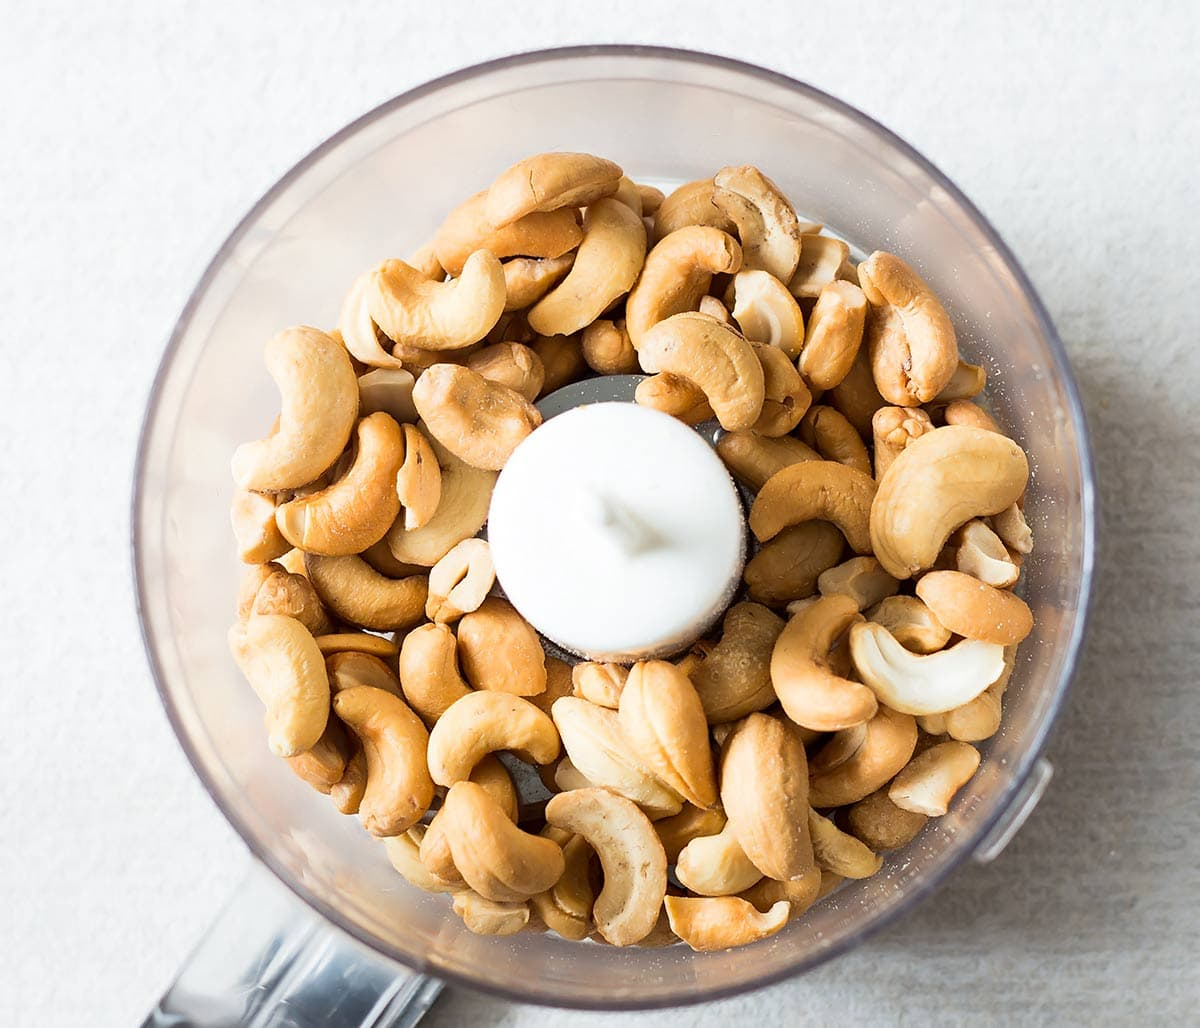 Roasted cashews in food processor